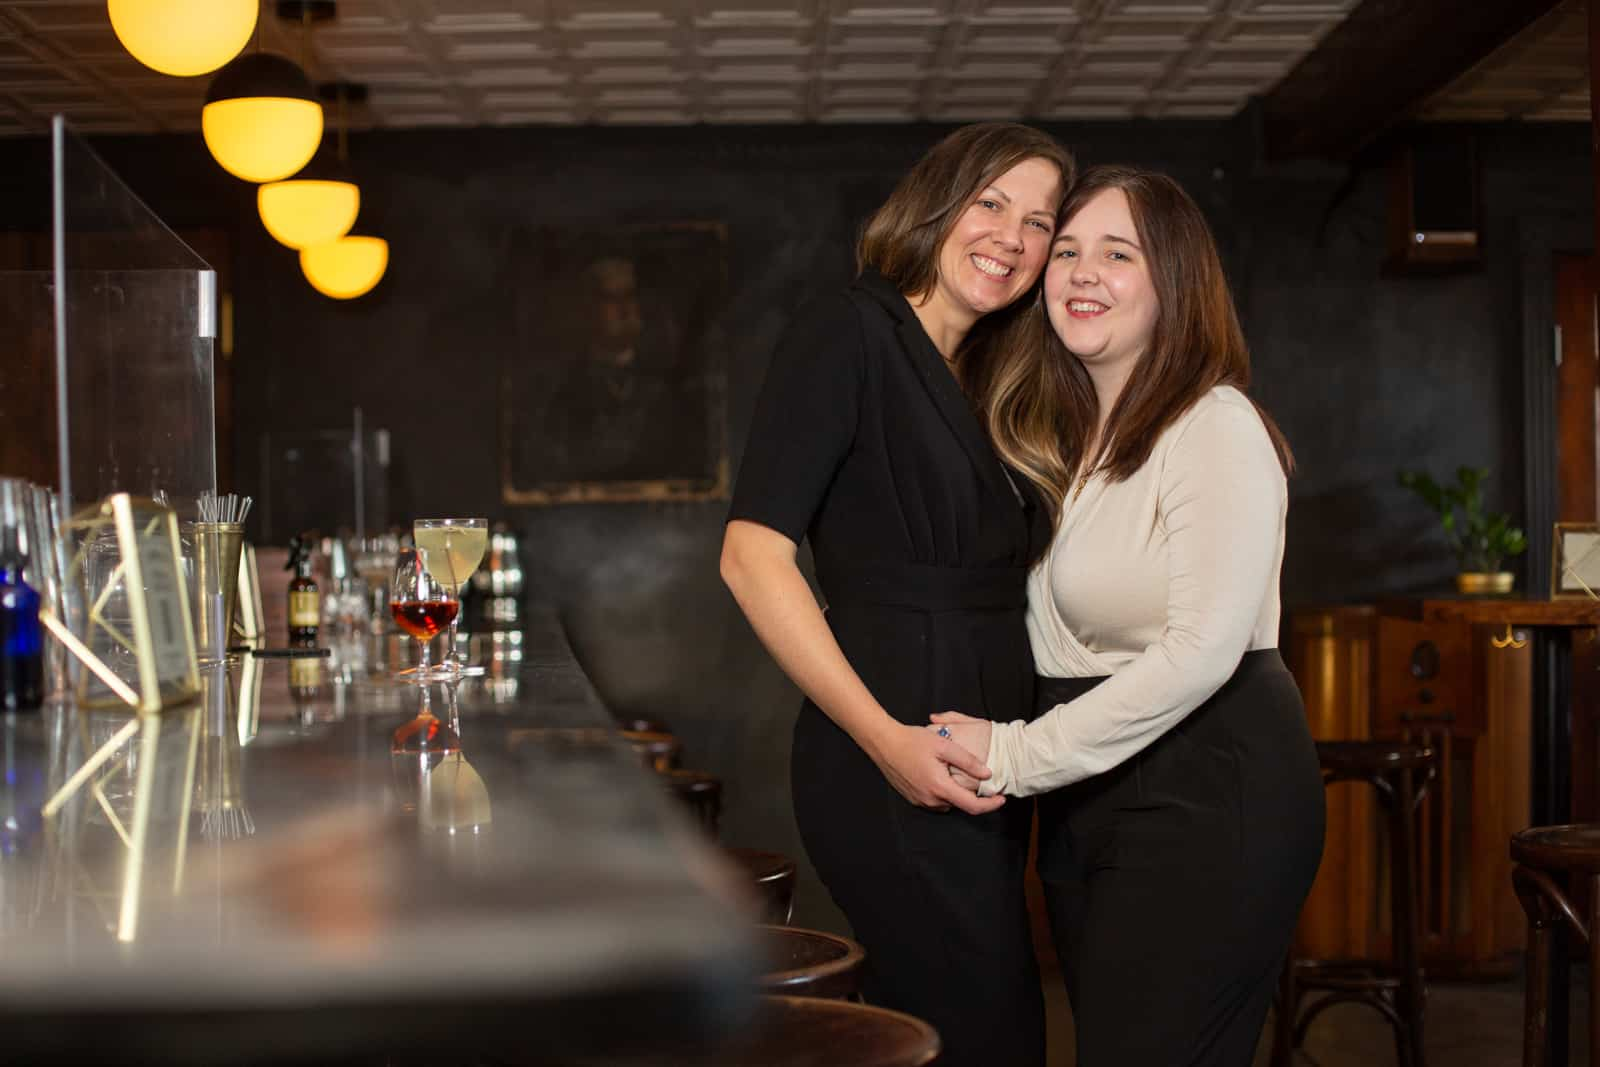 Two women hug standing next to a dimly lit cocktail bar